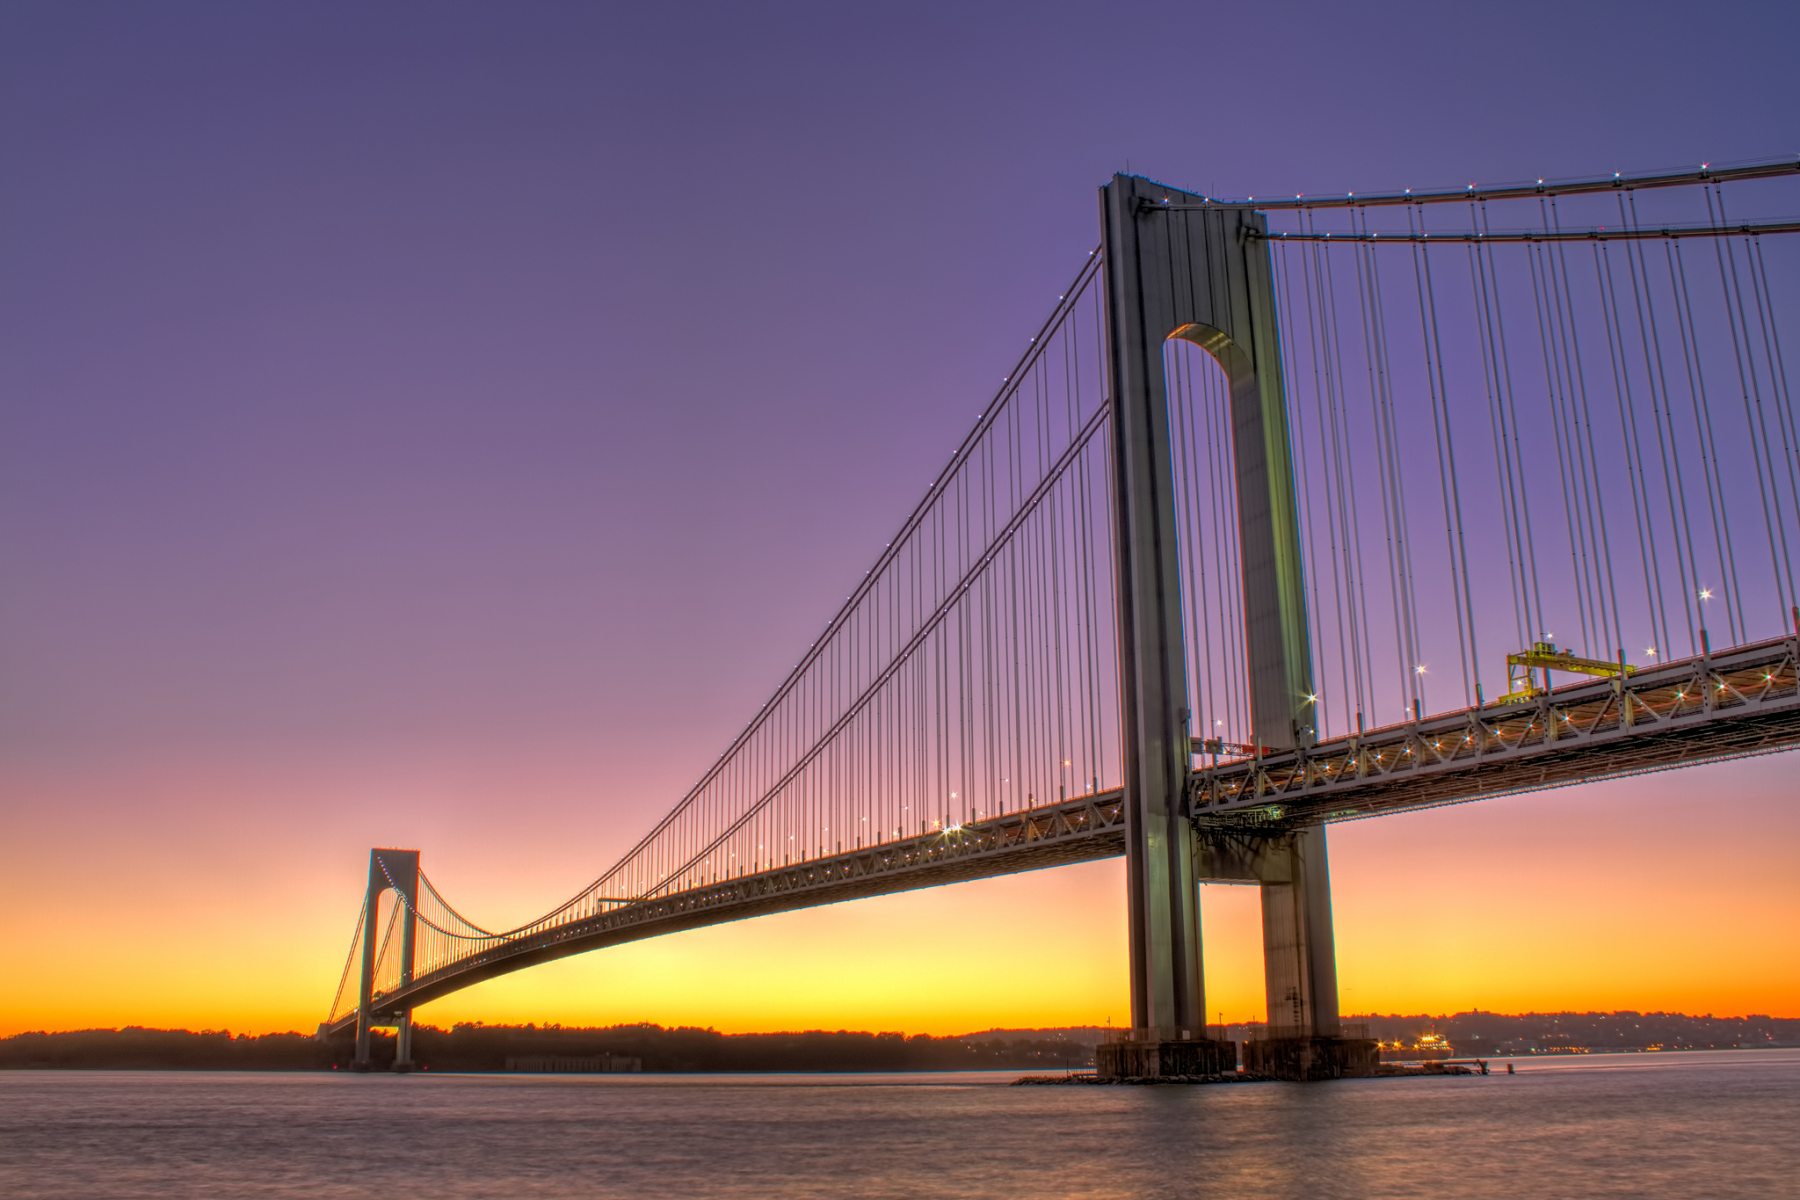 20151011_Verrazano-143_4_5_6_7_8_9_tonemapped_web